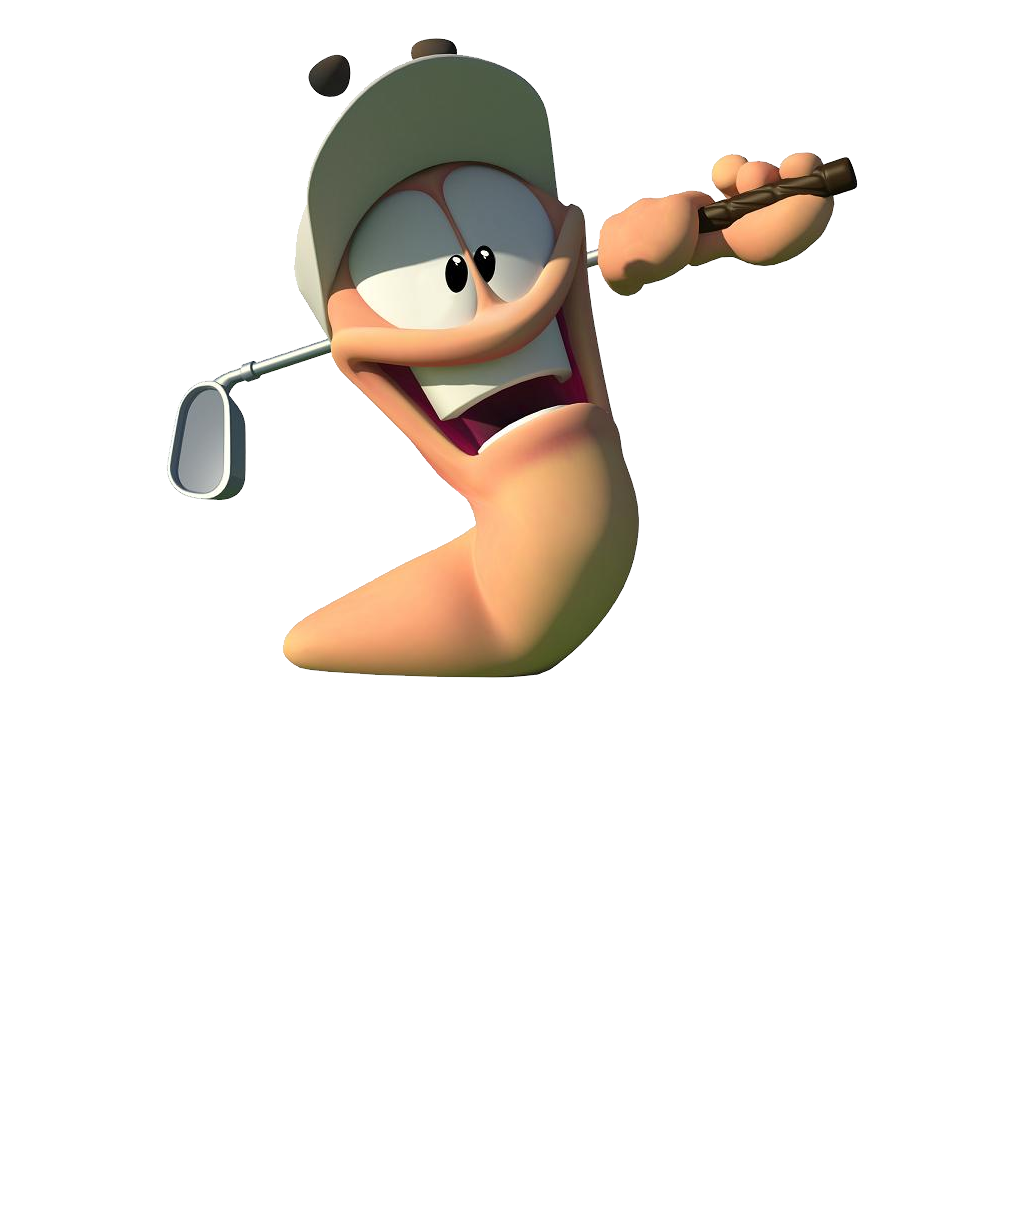 Worms game PNG